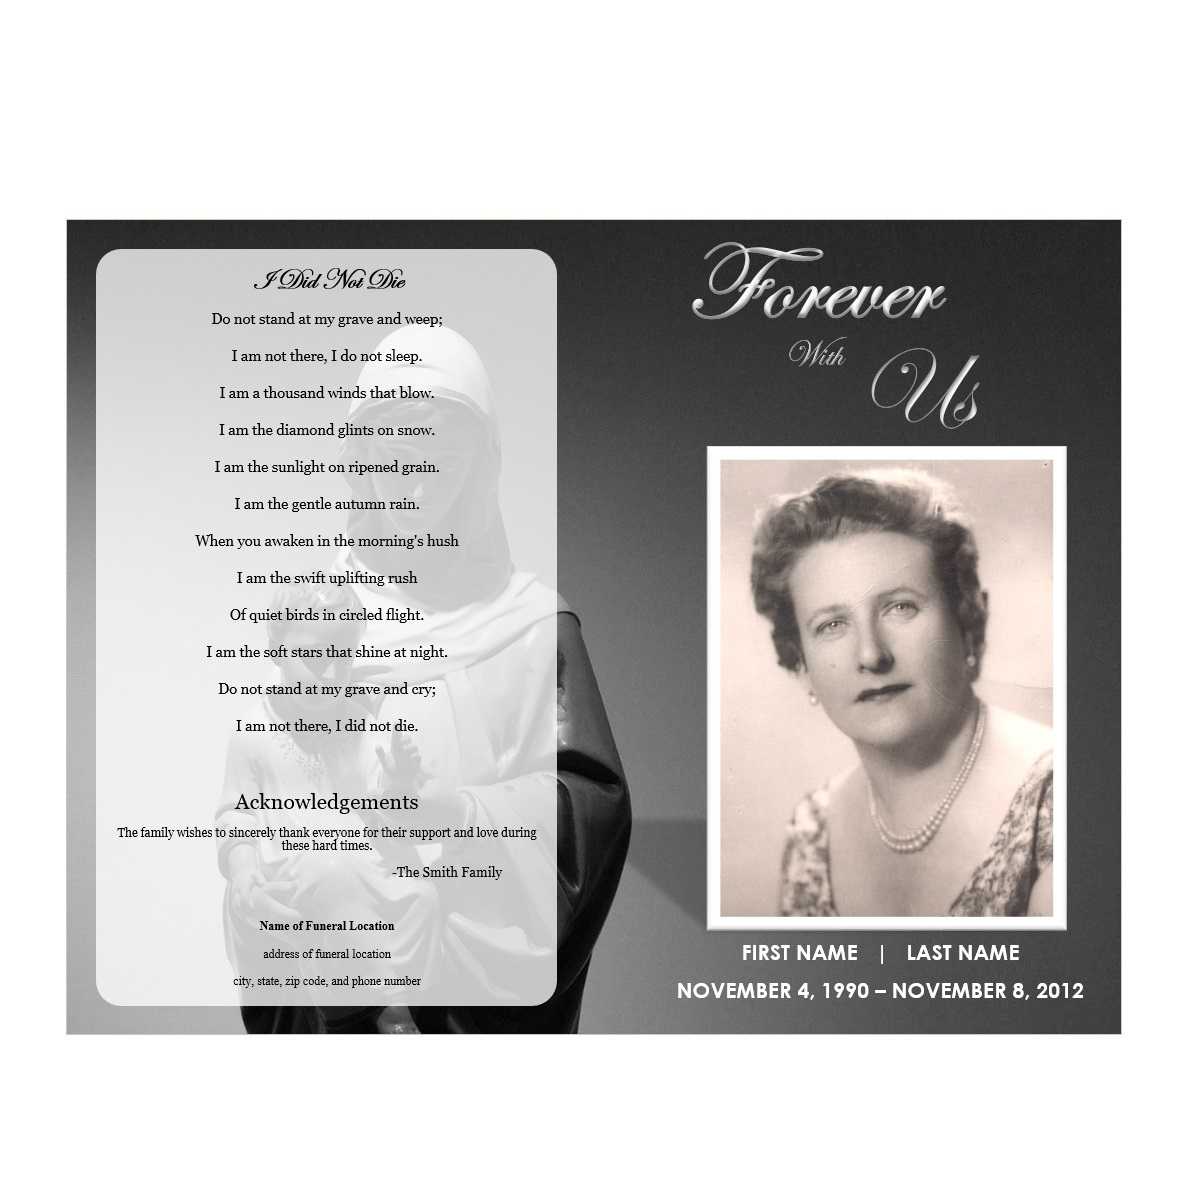 Virgin Mary Funeral Program Template  Free Funeral Templates Download